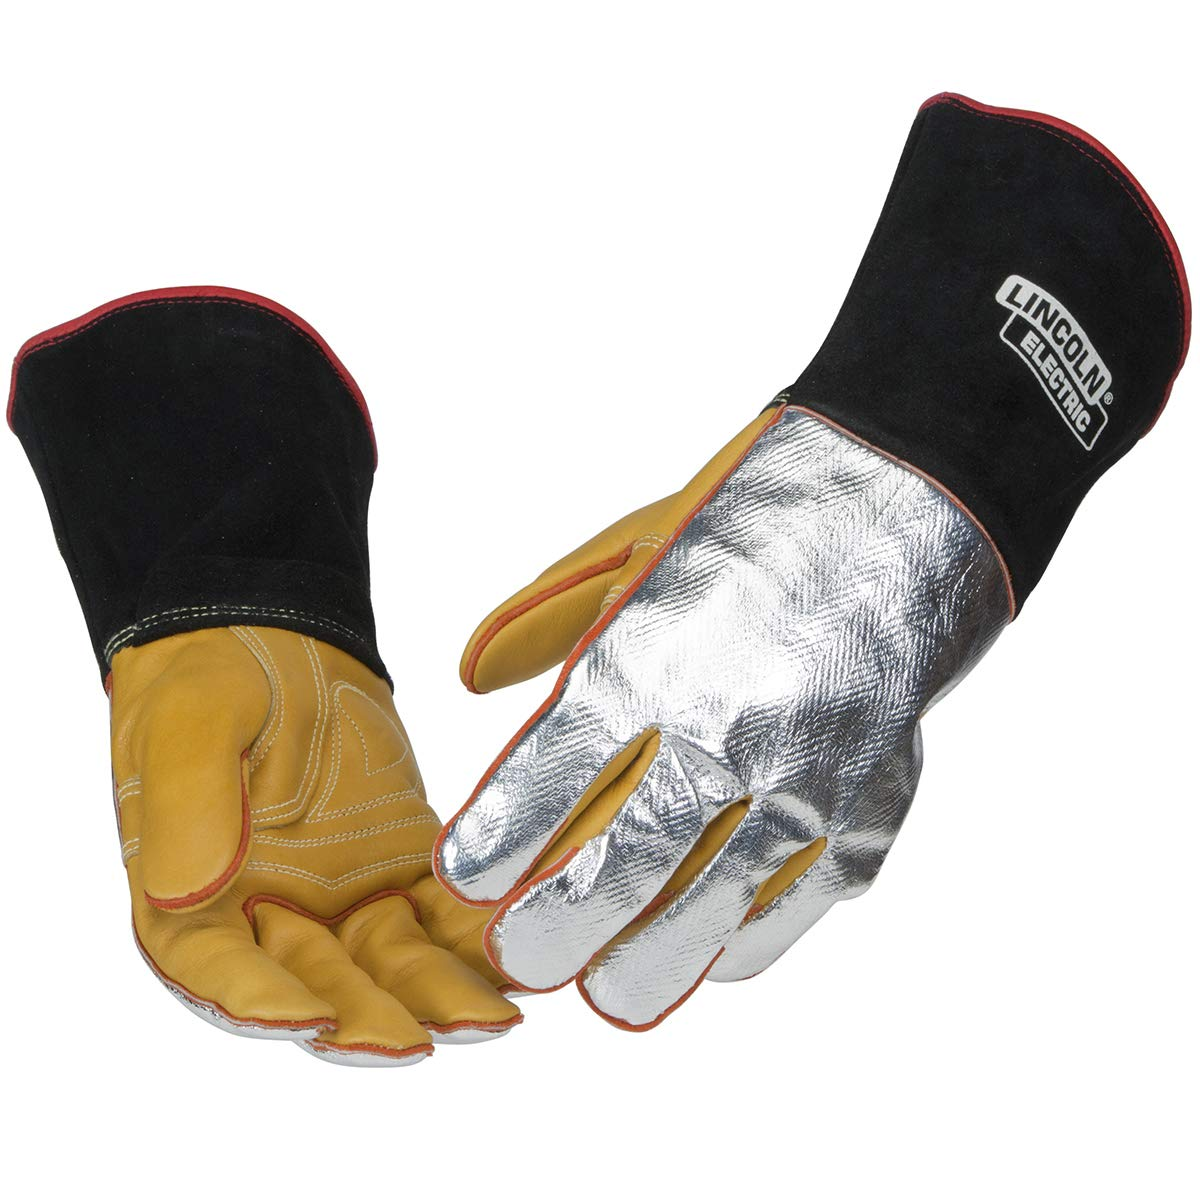 Lincoln Electric Heat Resistant Welding Gloves |Aluminized Reflective Hand | Large | K2982-L by Lincoln Electric